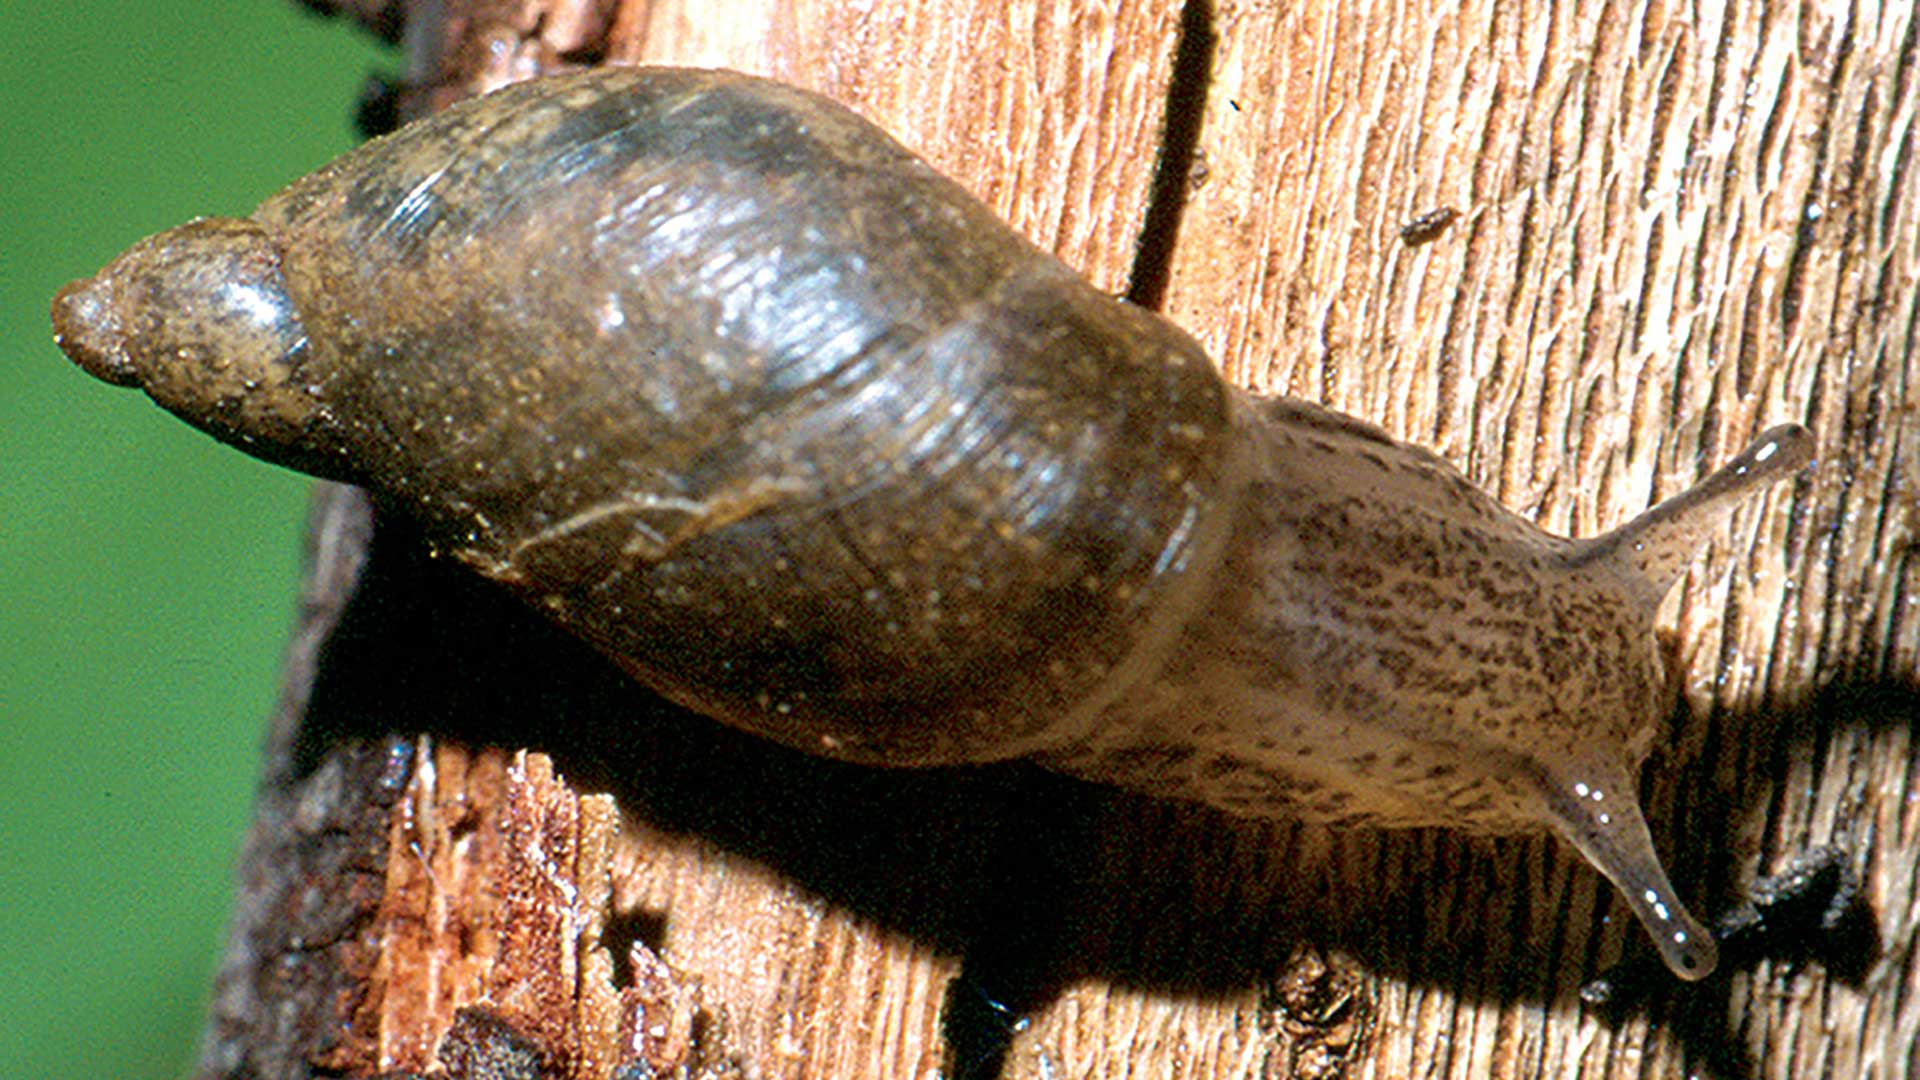 The Kanab ambersnail was listed as an endagered species for more than 20 years, but federal officials have proposed taking it off the list after determining it is not a species distinct from other, more common ambersnails.